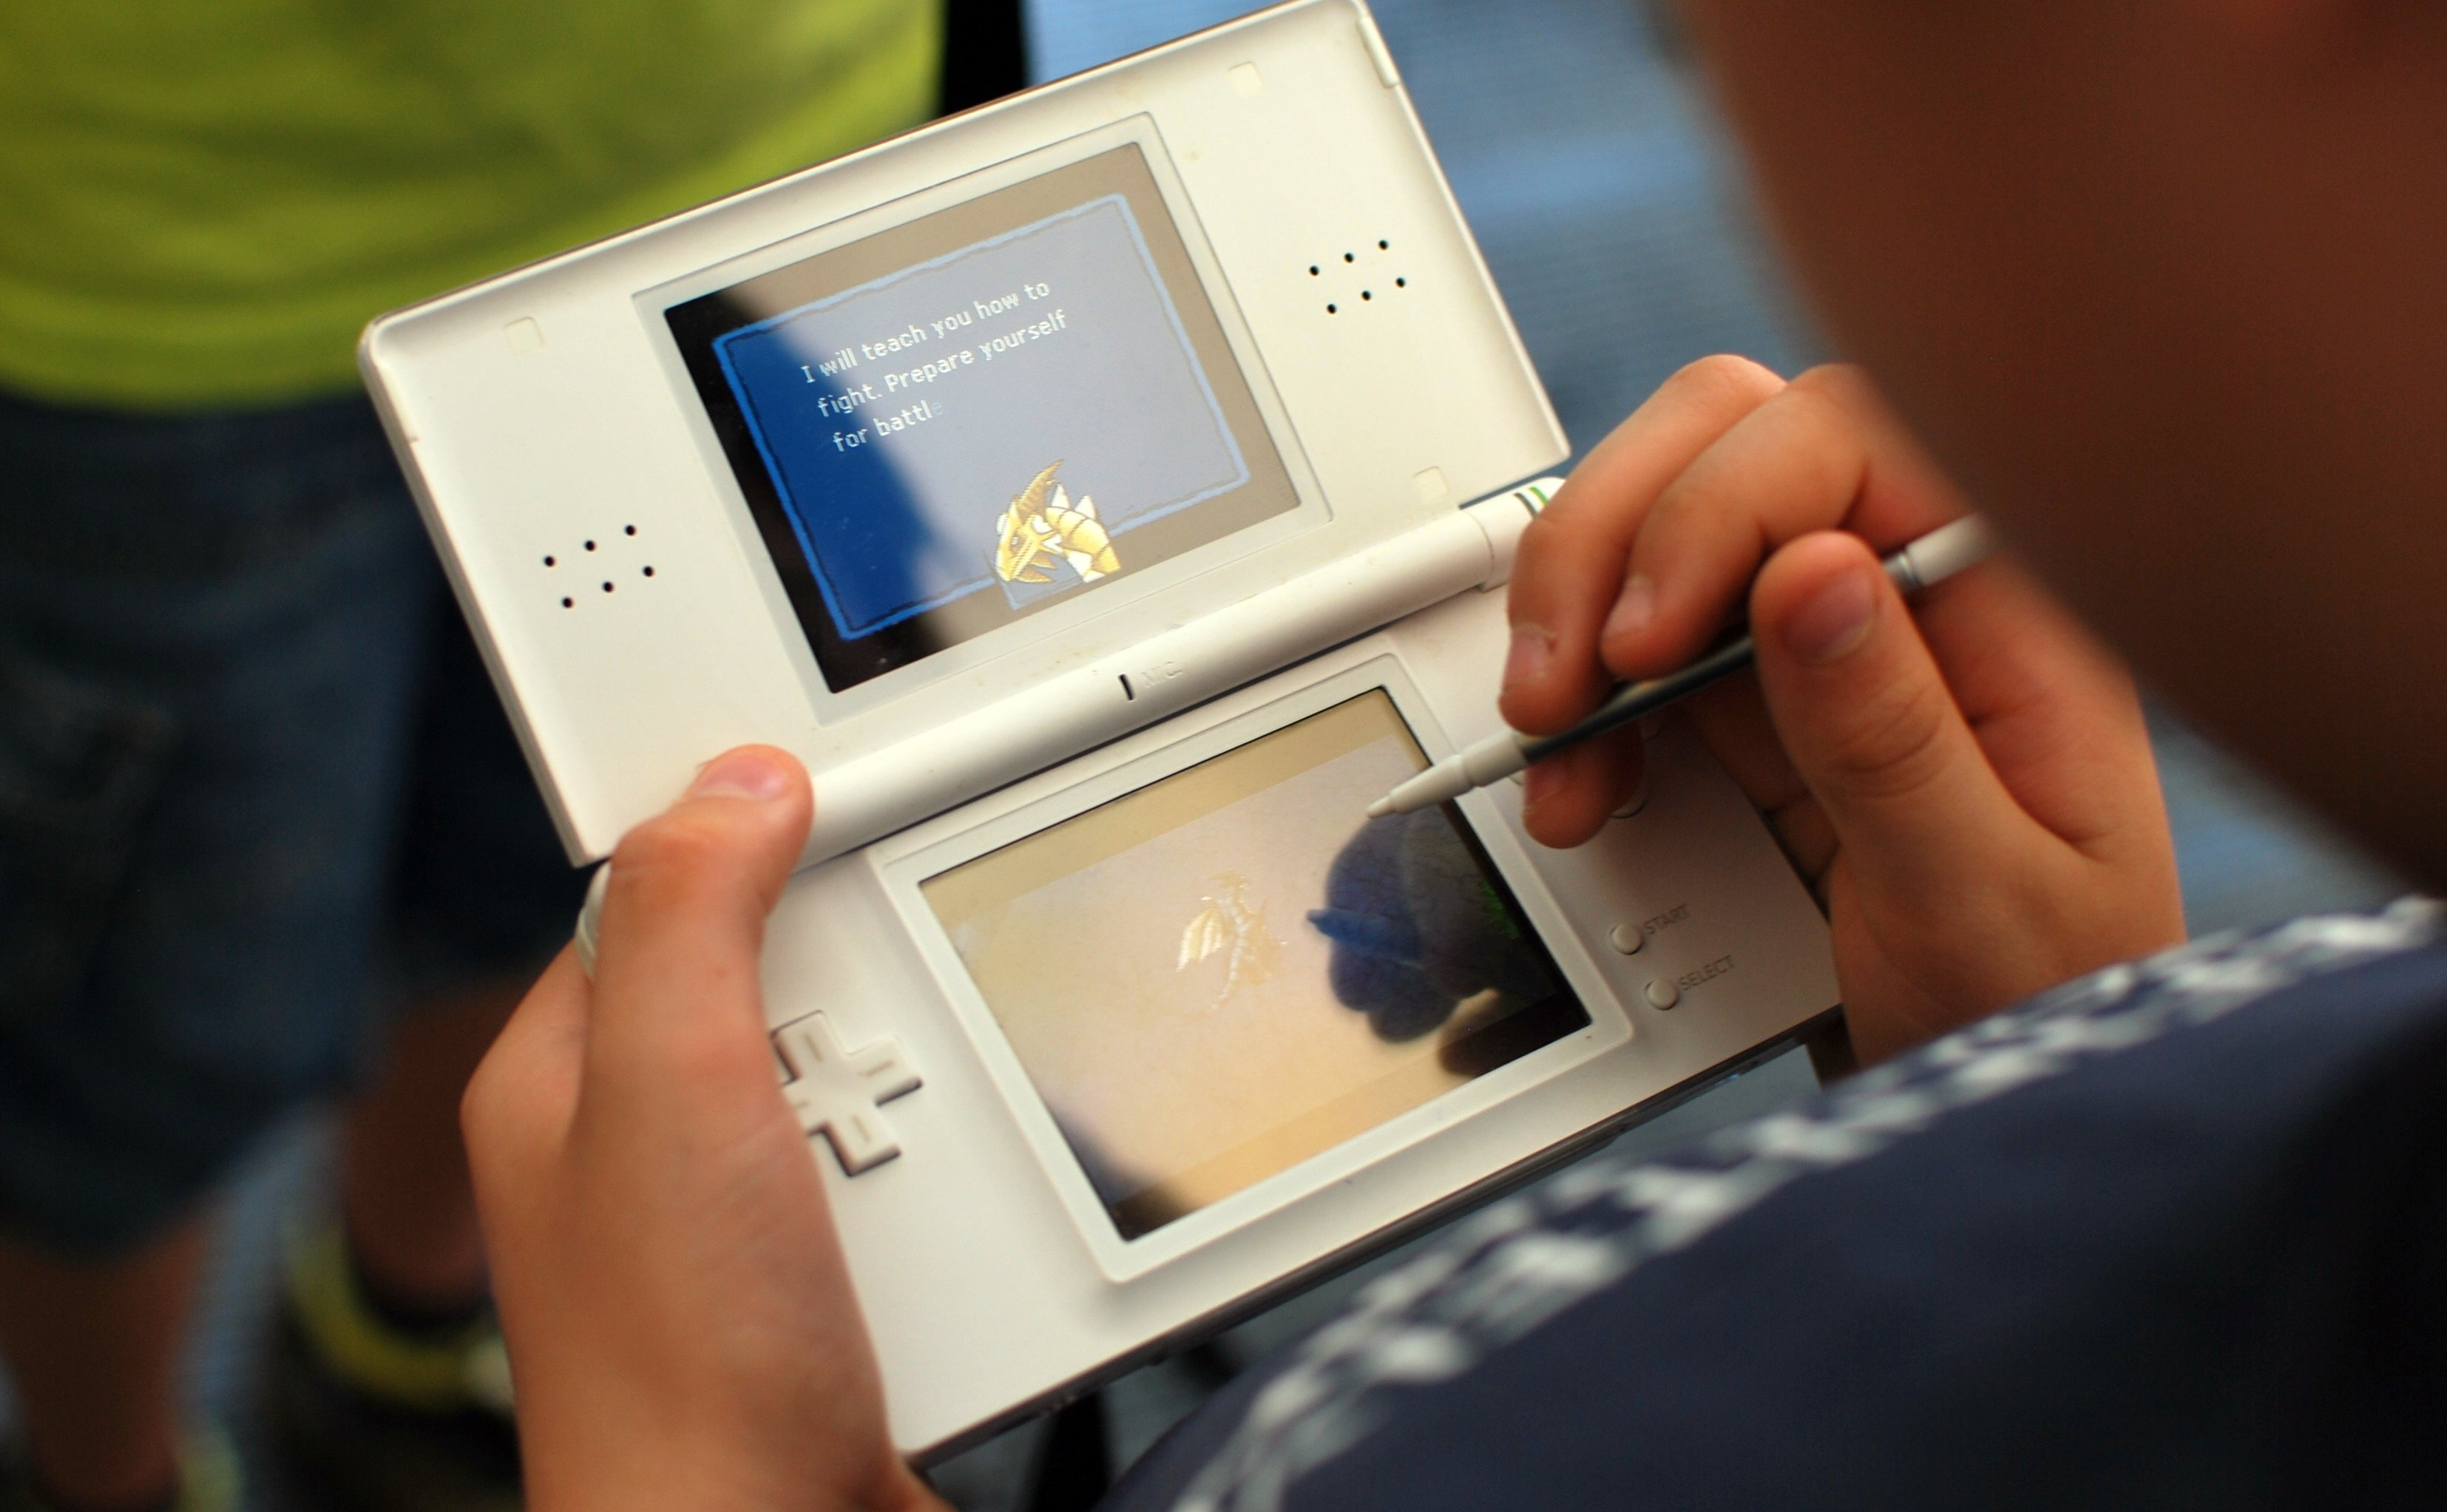 A child plays video games on a Nintendo DS